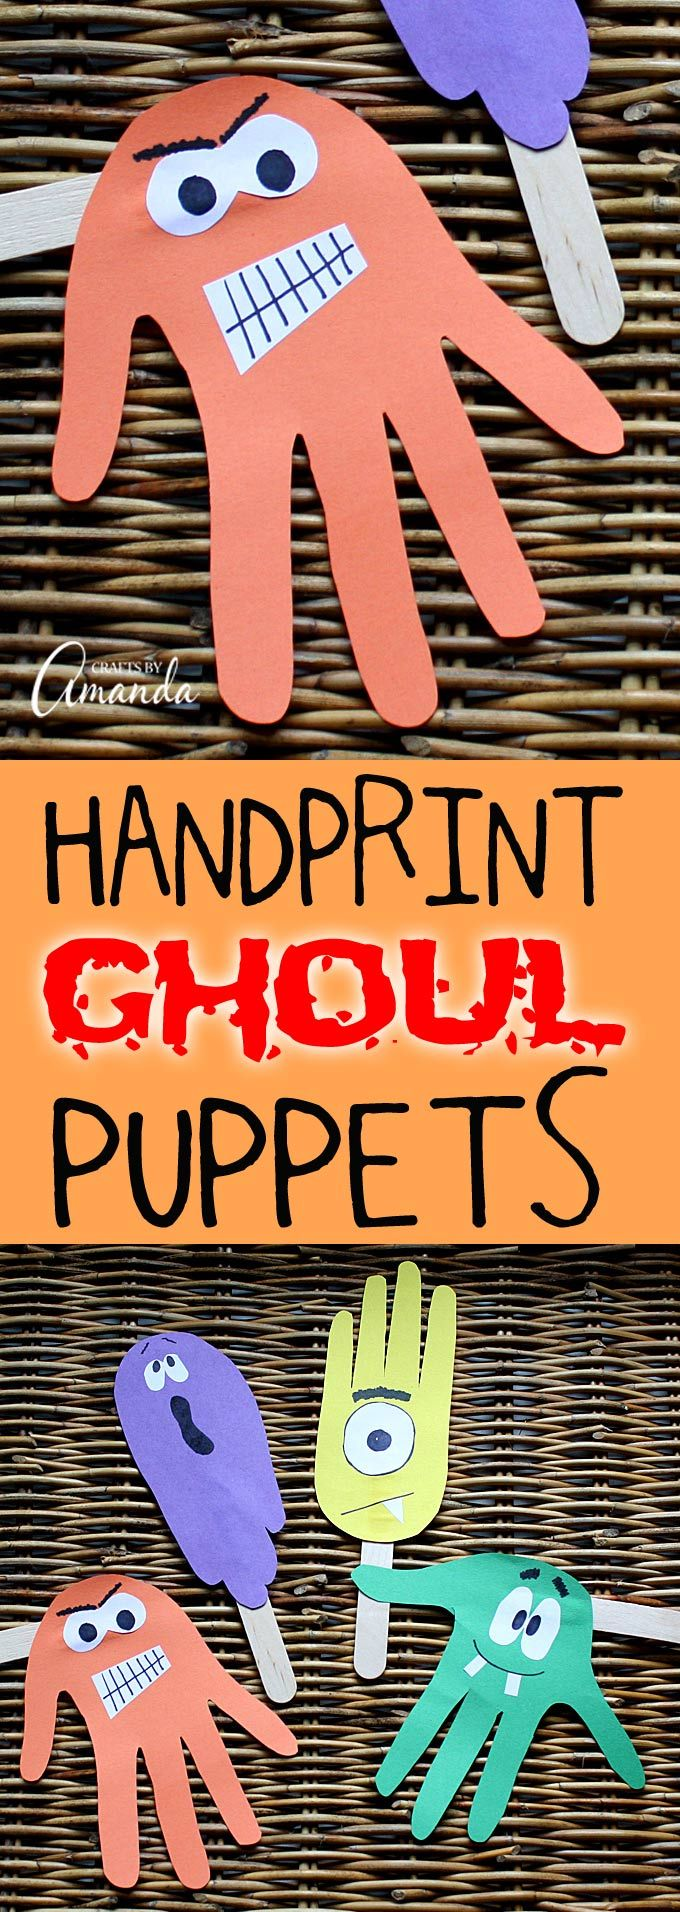 handprint puppets for halloween ghoulish fun for kids - Halloween Crafts For The Classroom